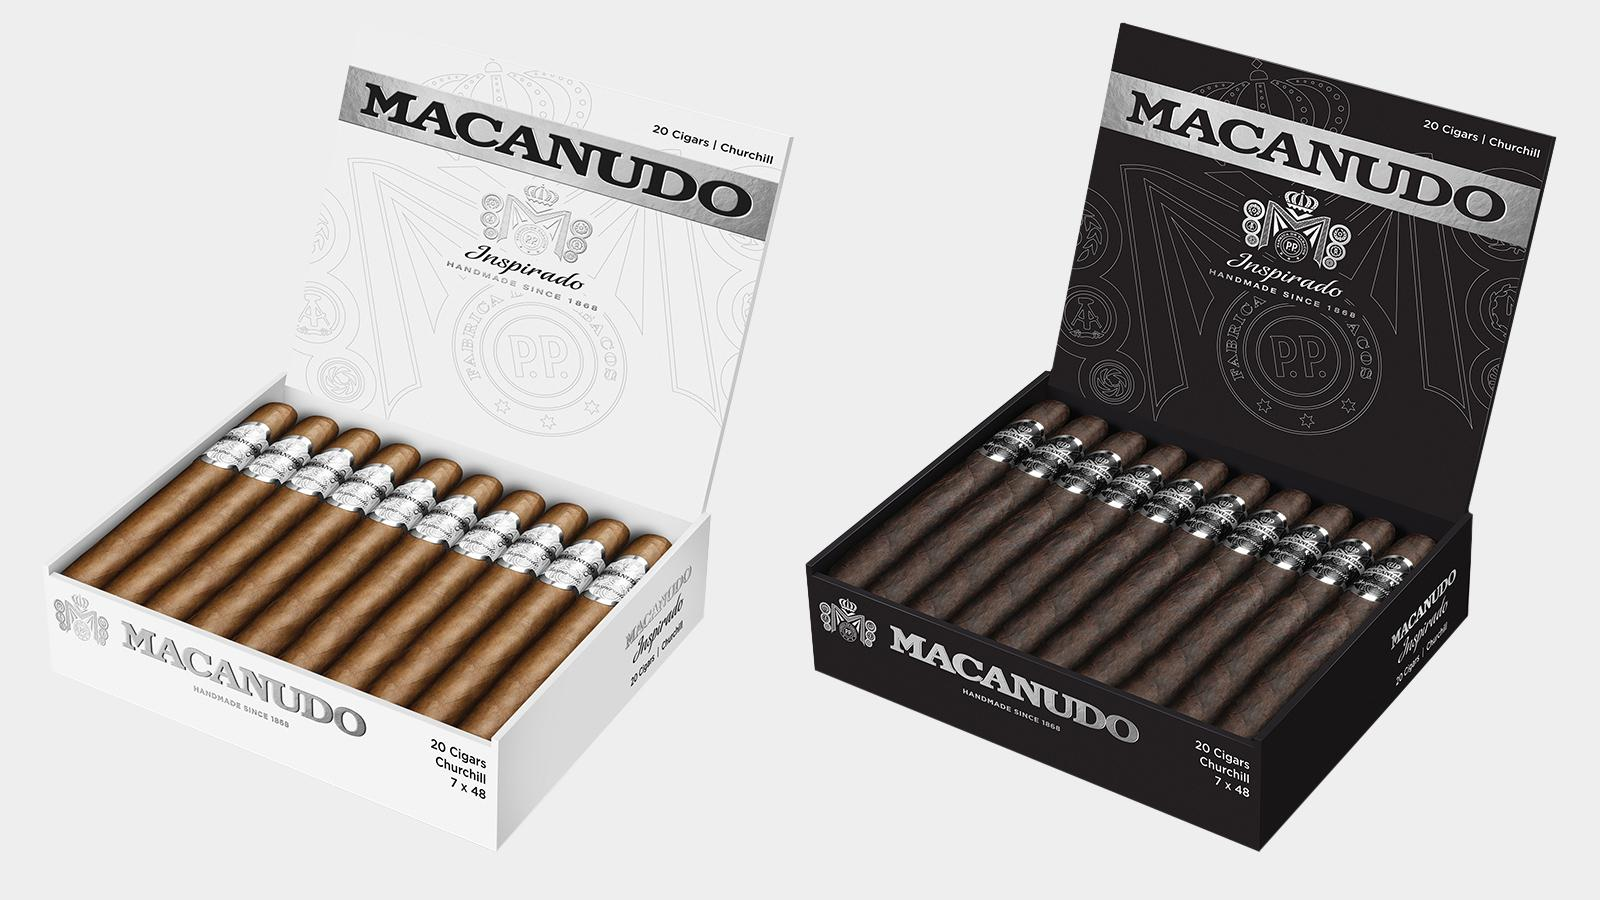 Macanudo Inspirado White will be covered in a light Connecticut-seed wrapper, while Inspirado Black dons dark broadleaf.